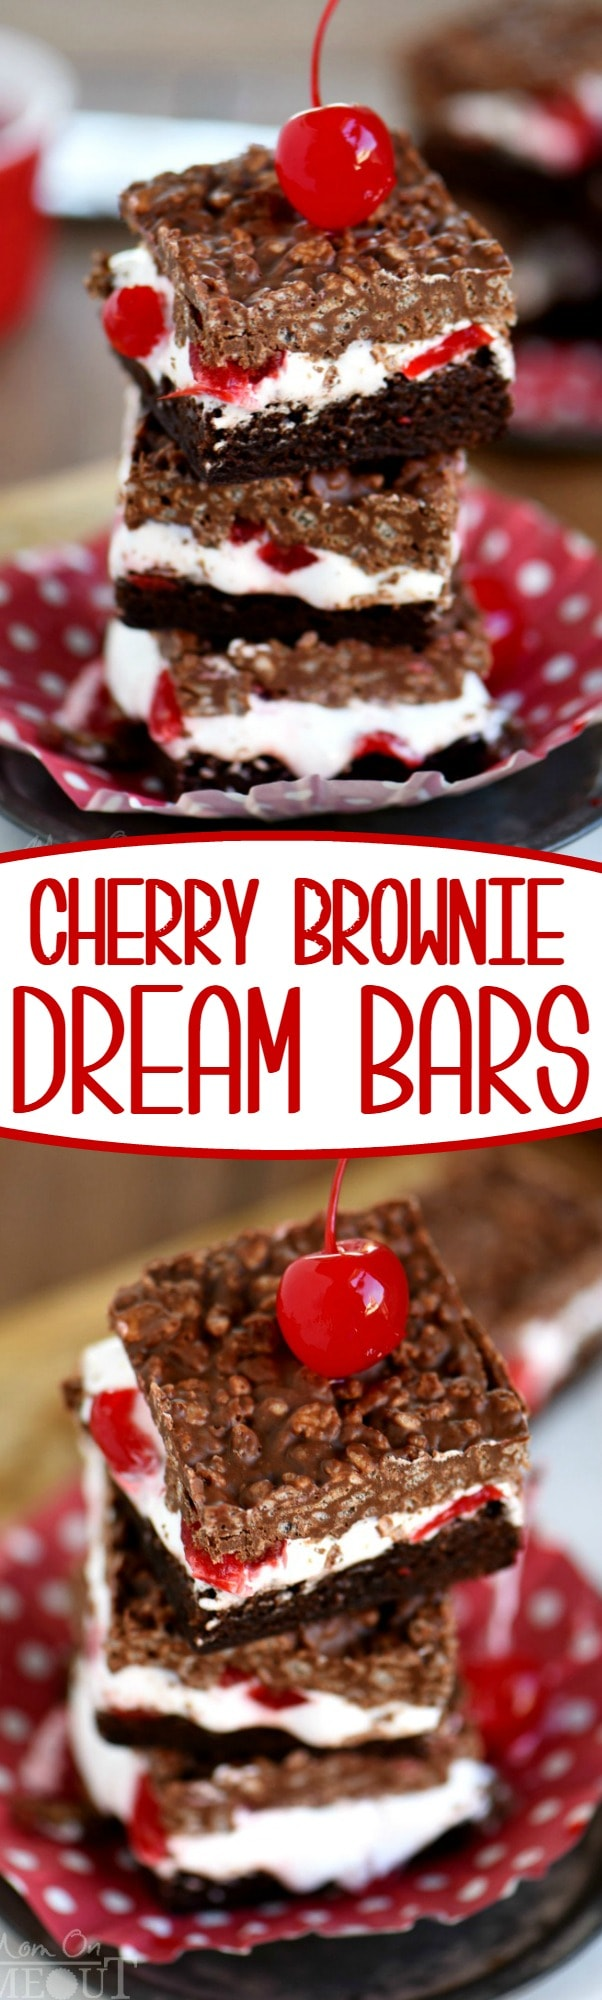 cherry-brownie-dream-bars-collage